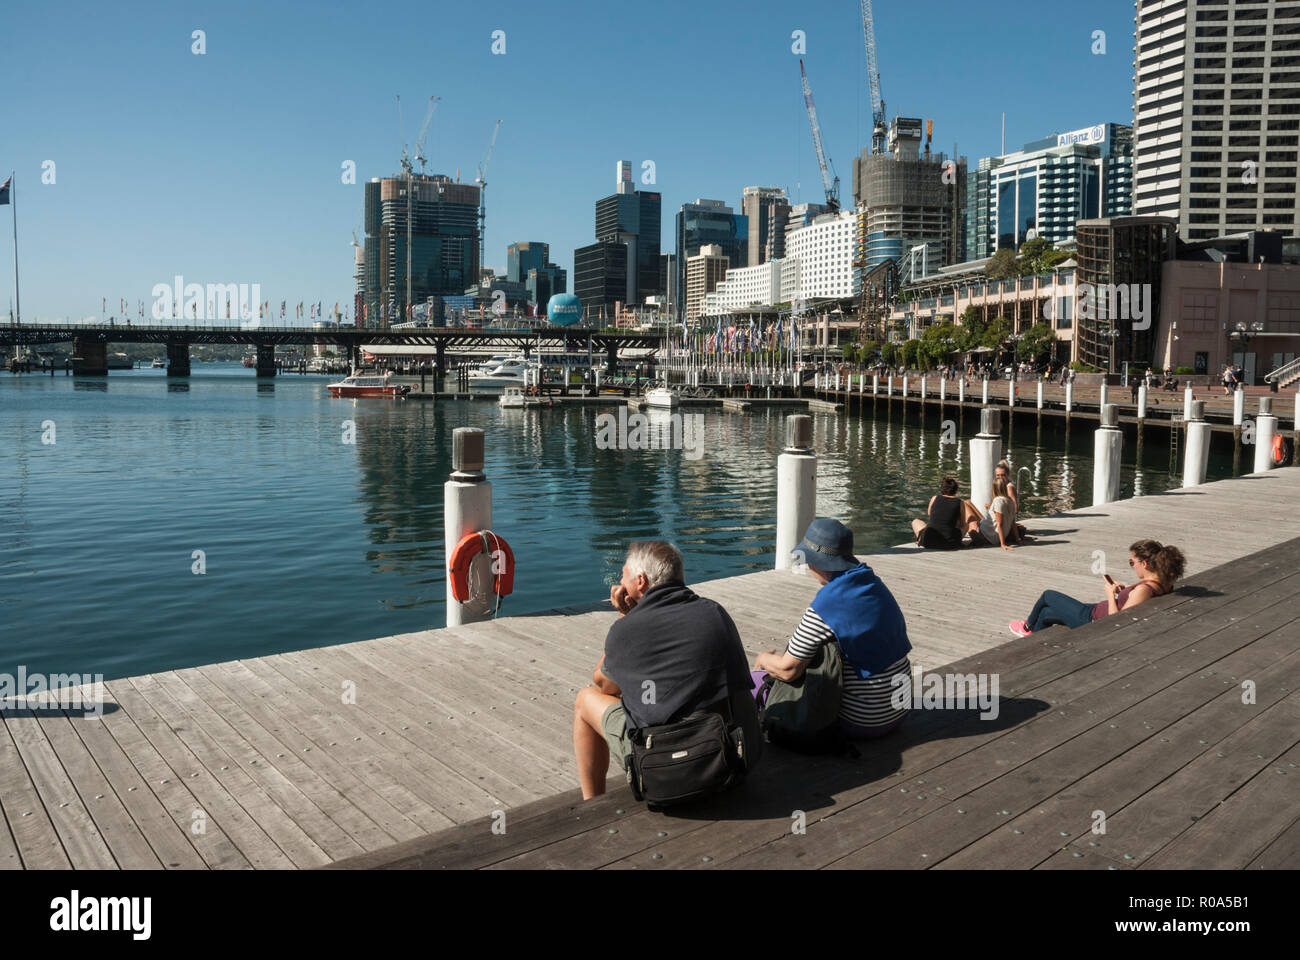 People resting on a board walk in the sunshine, with the quayside, boats and buildings of Darling Harbour. - Stock Image